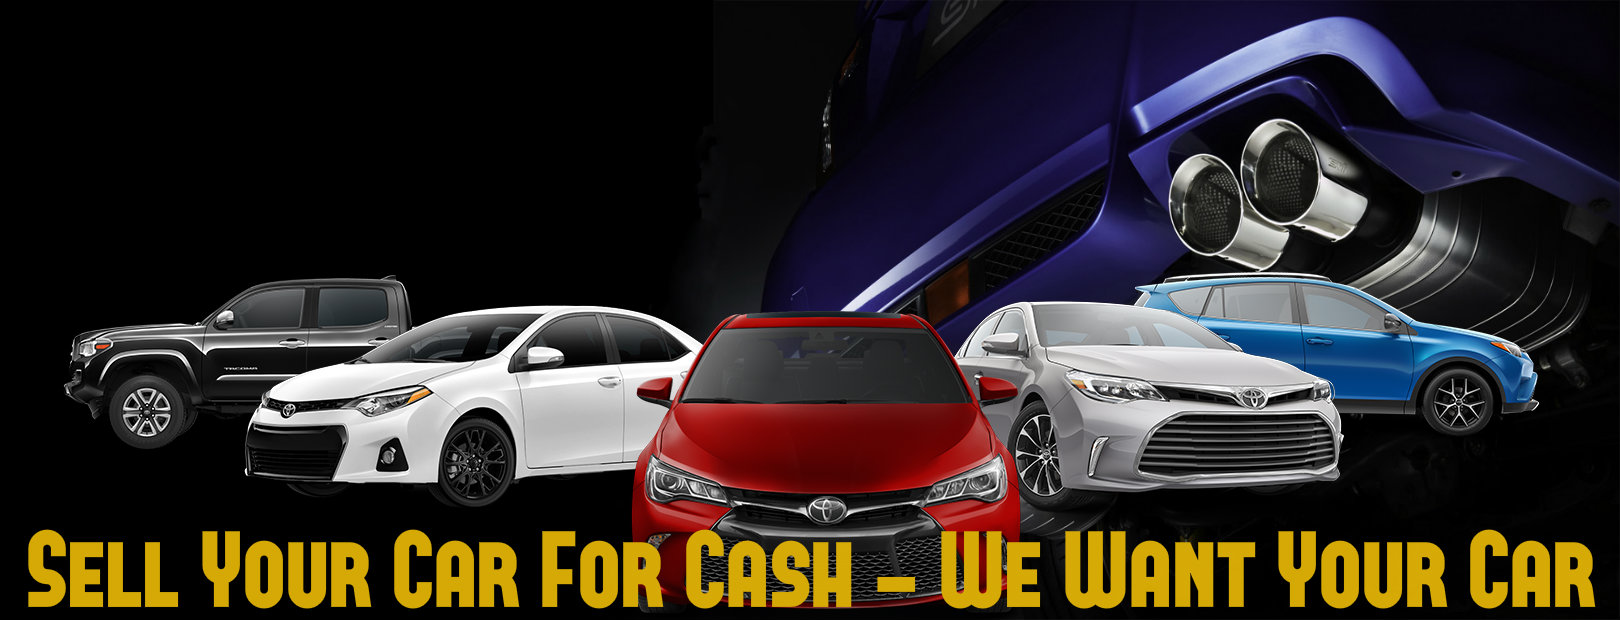 Used Car Buyers, We Come to You, Cash Car Buyer Syndey